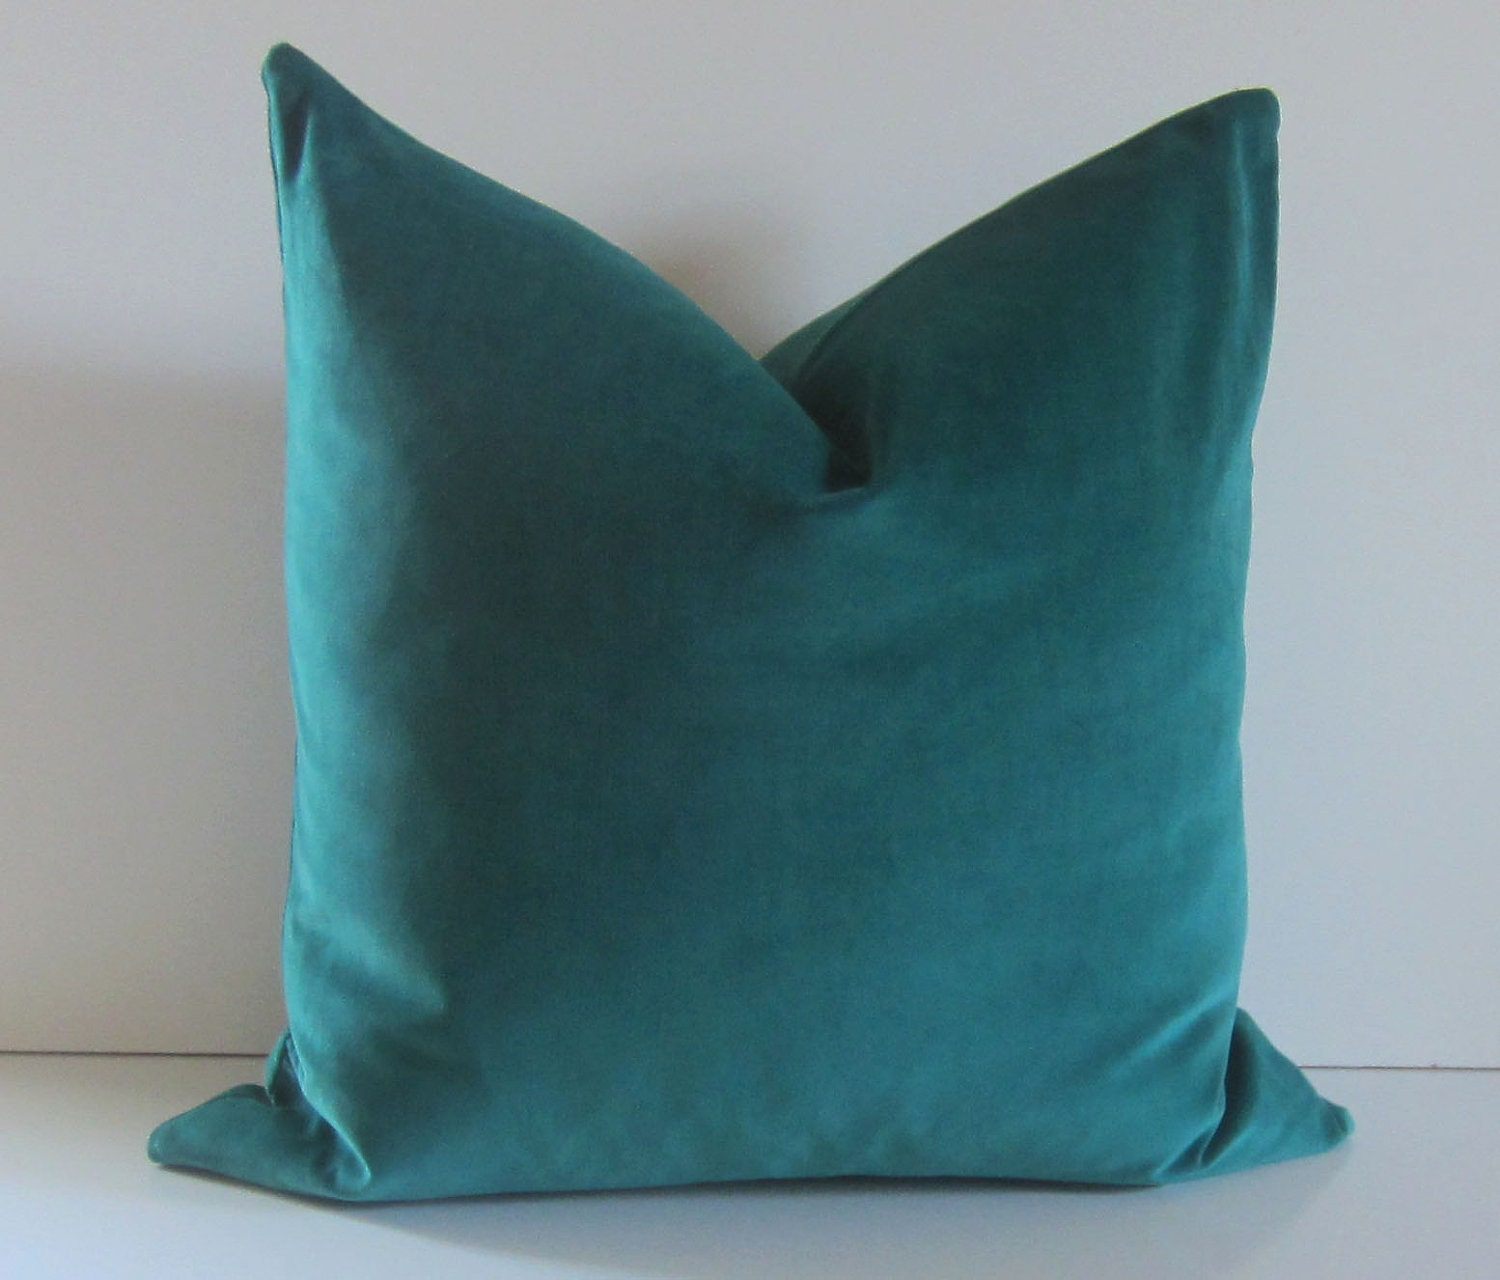 Throw Pillow Covers Teal : Decorative Pillow Cover 20 inch teal velvet cotton